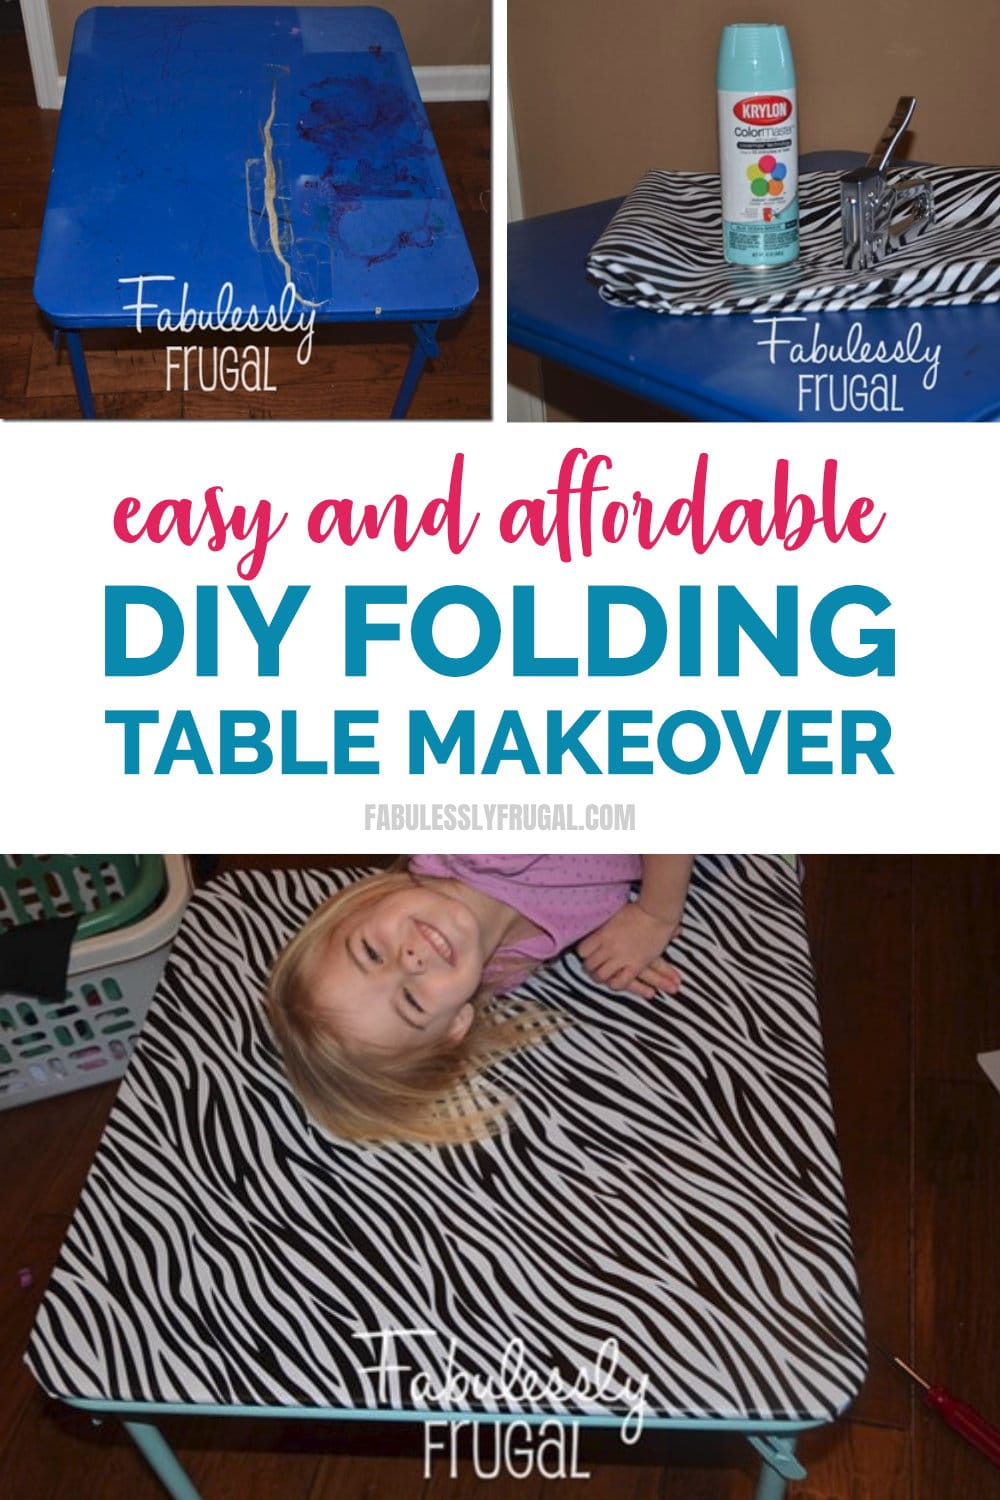 Easy and affordable DIY folding table makeover